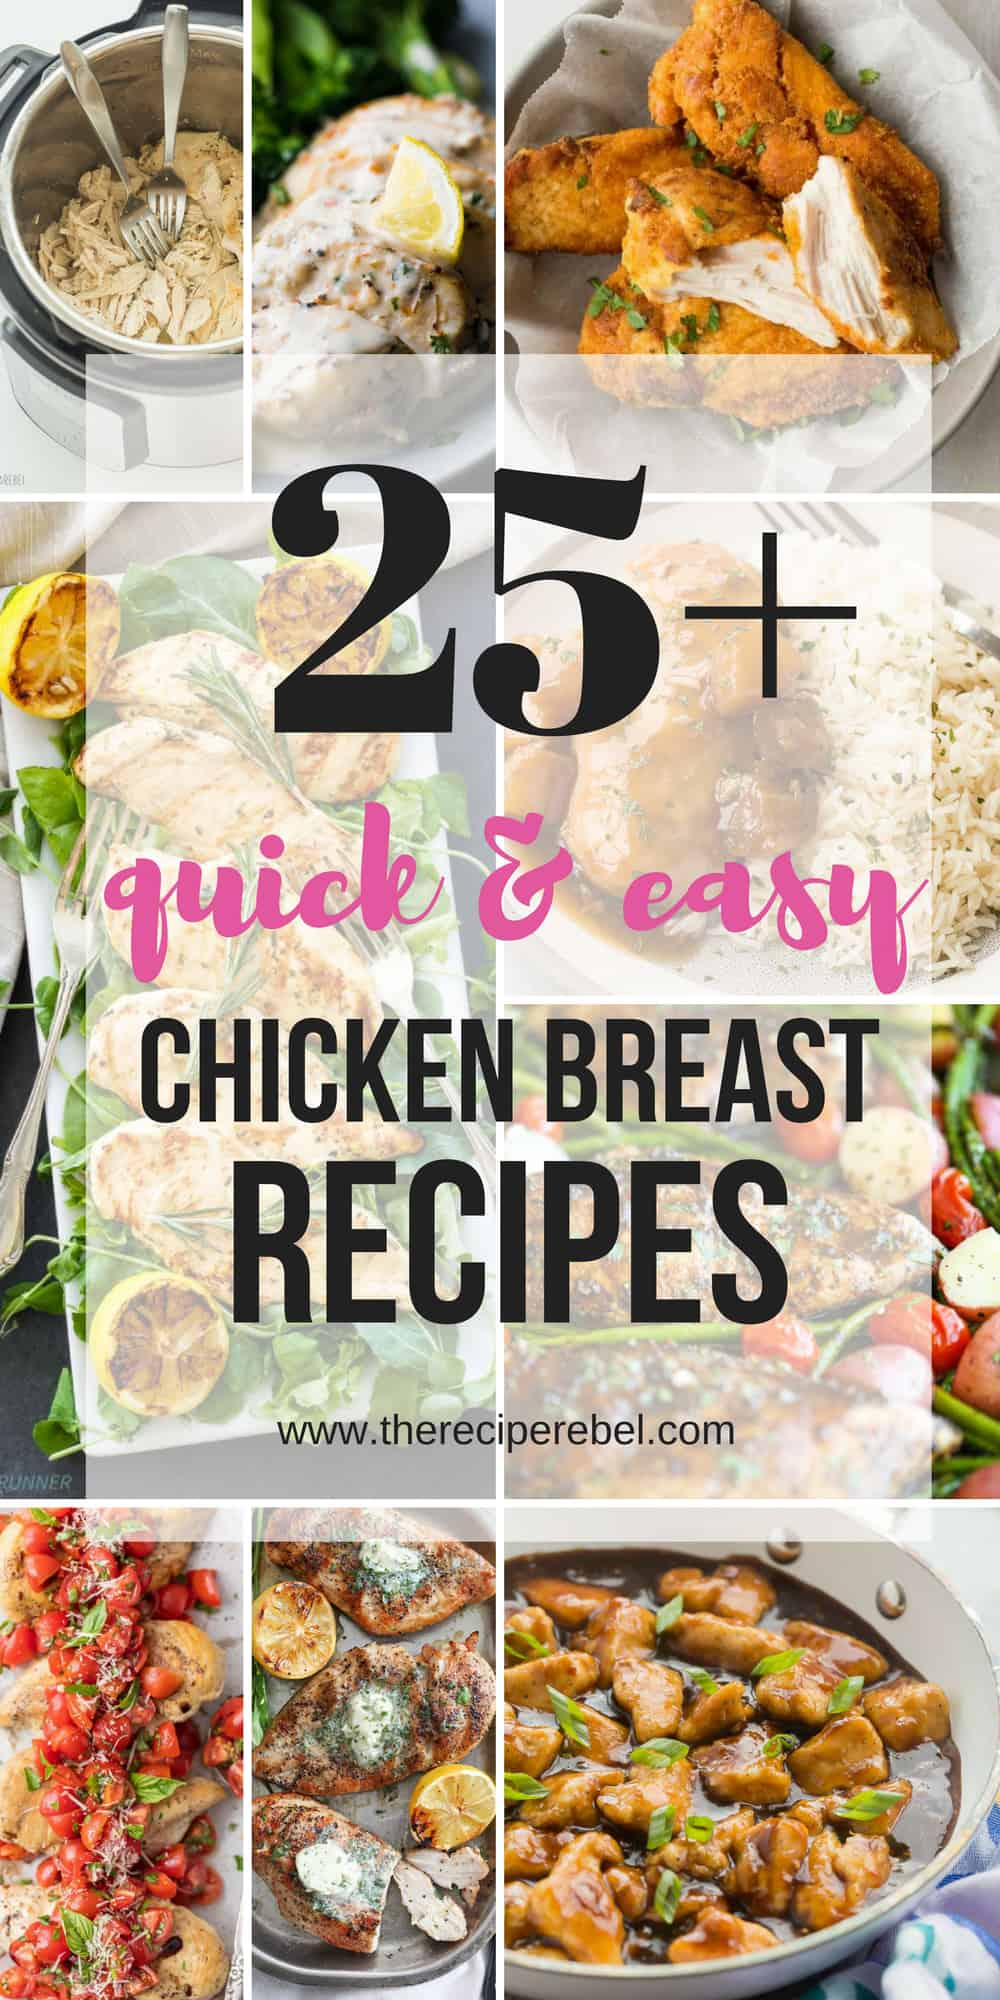 Easy Chicken Breast Recipes , The Recipe Rebel (quick and